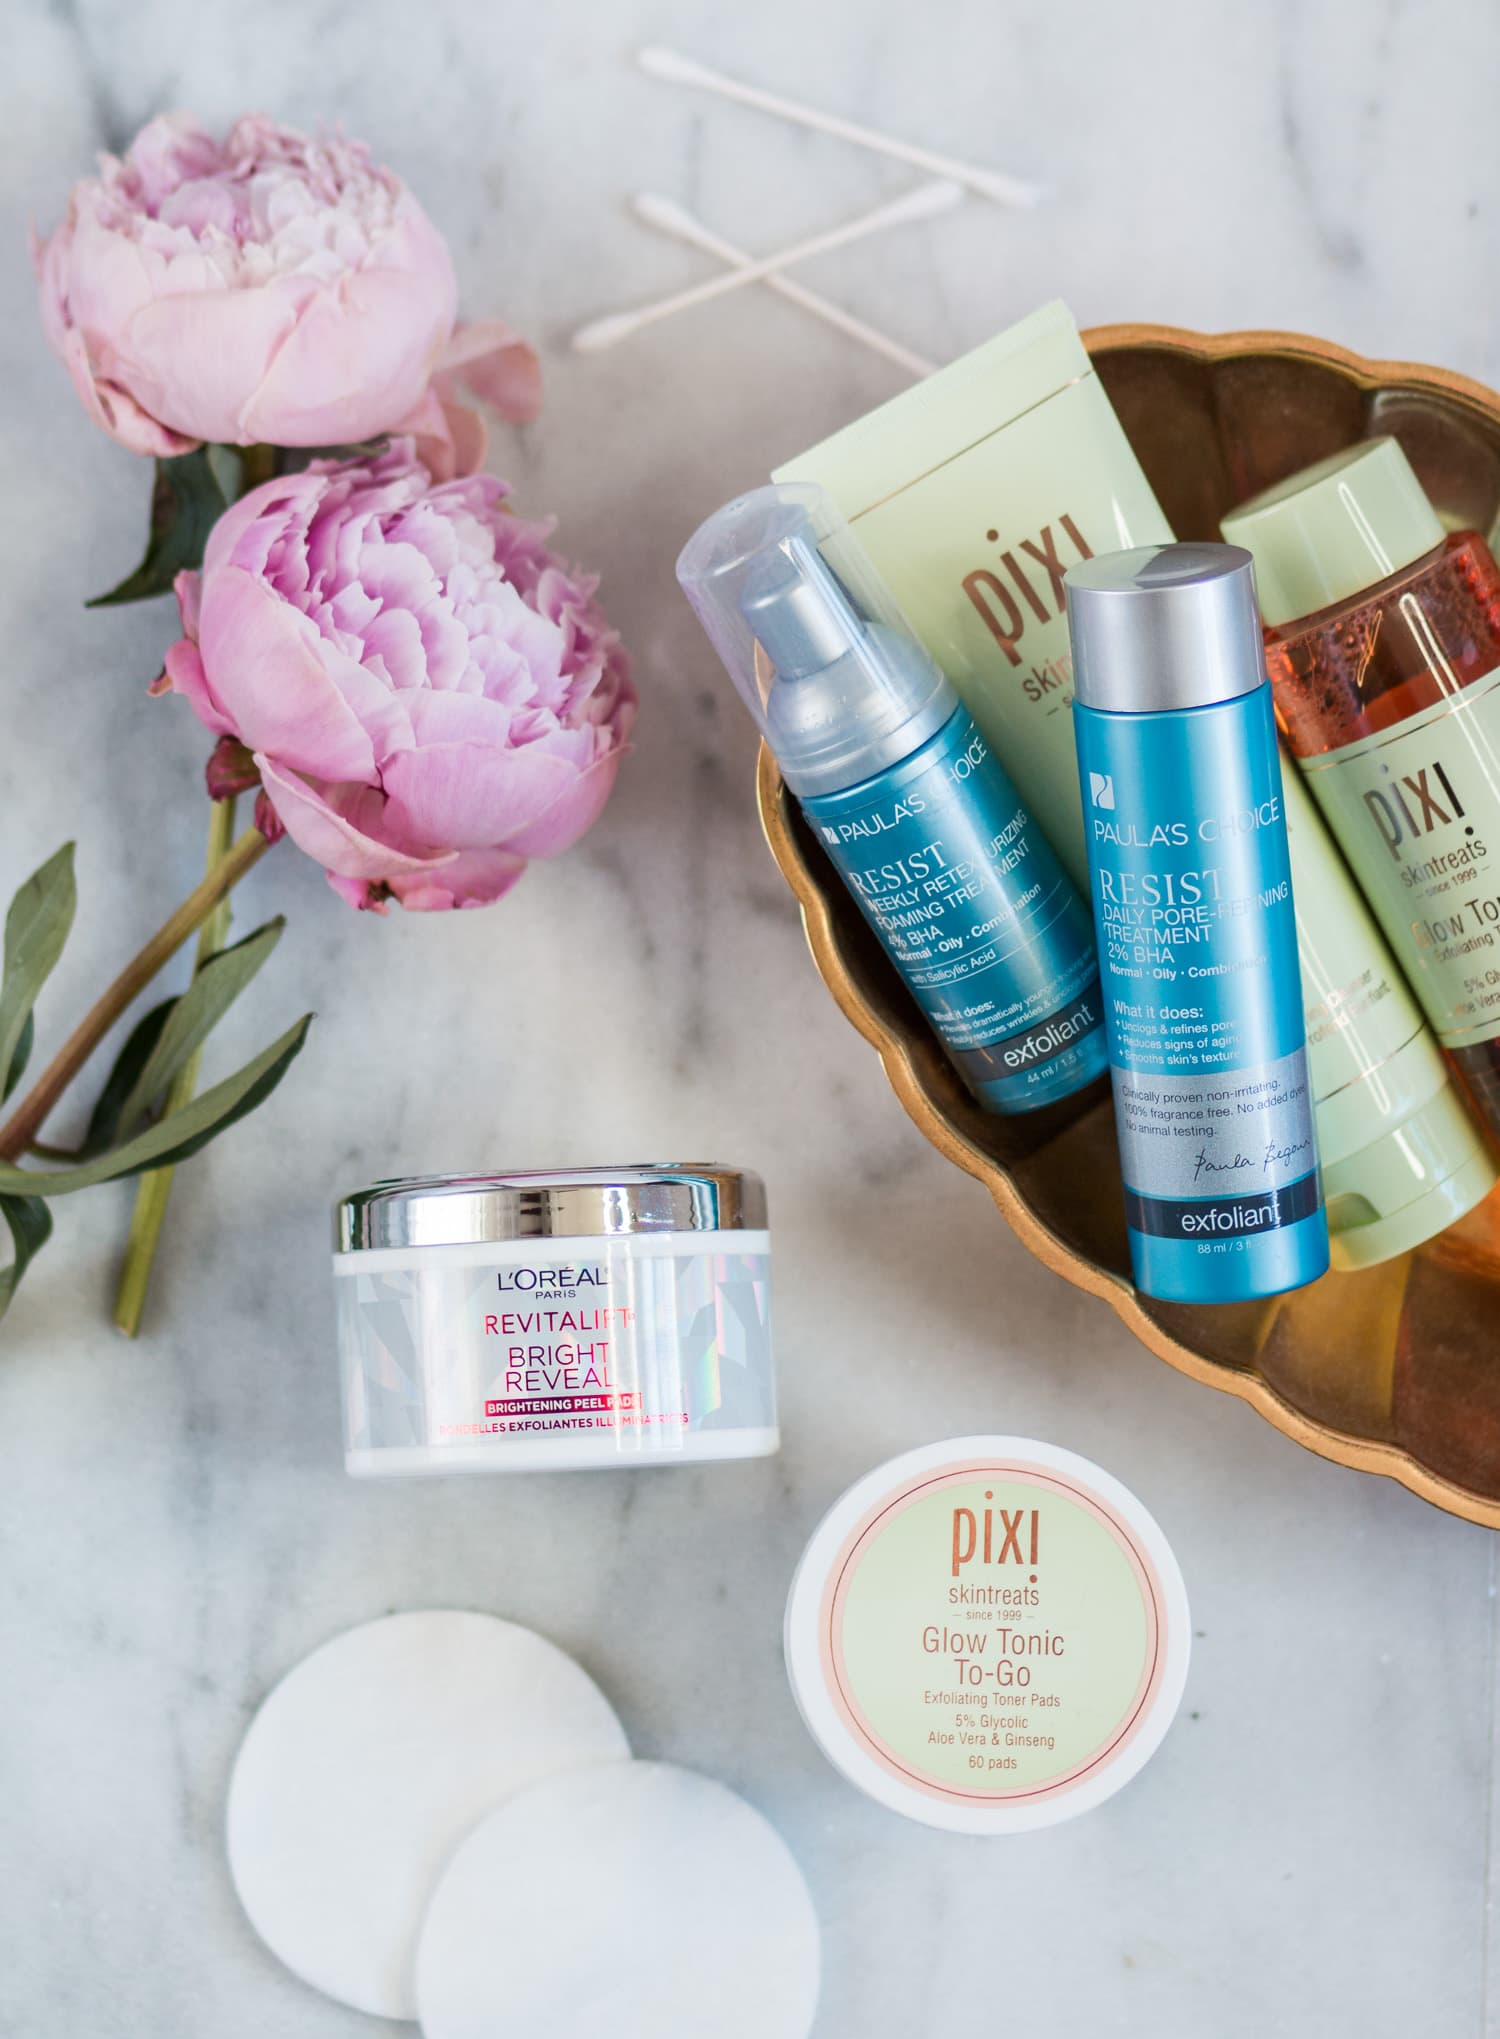 The best new skincare products for women in their 20s - including the best acid toners + a review of Paula's Choice Resist Daily Pore-Refining Treatment 2% BHA, Paula's Choice Resist Weekly Retexturizing Foaming Treatment 4% BHA, L'ORÉAL Revitalift Bright Reveal Peel Pads, and Pixi Beauty Glow Tonic To-Go Exfoliating Toner Pads by beauty blogger Ashley Brooke Nicholas